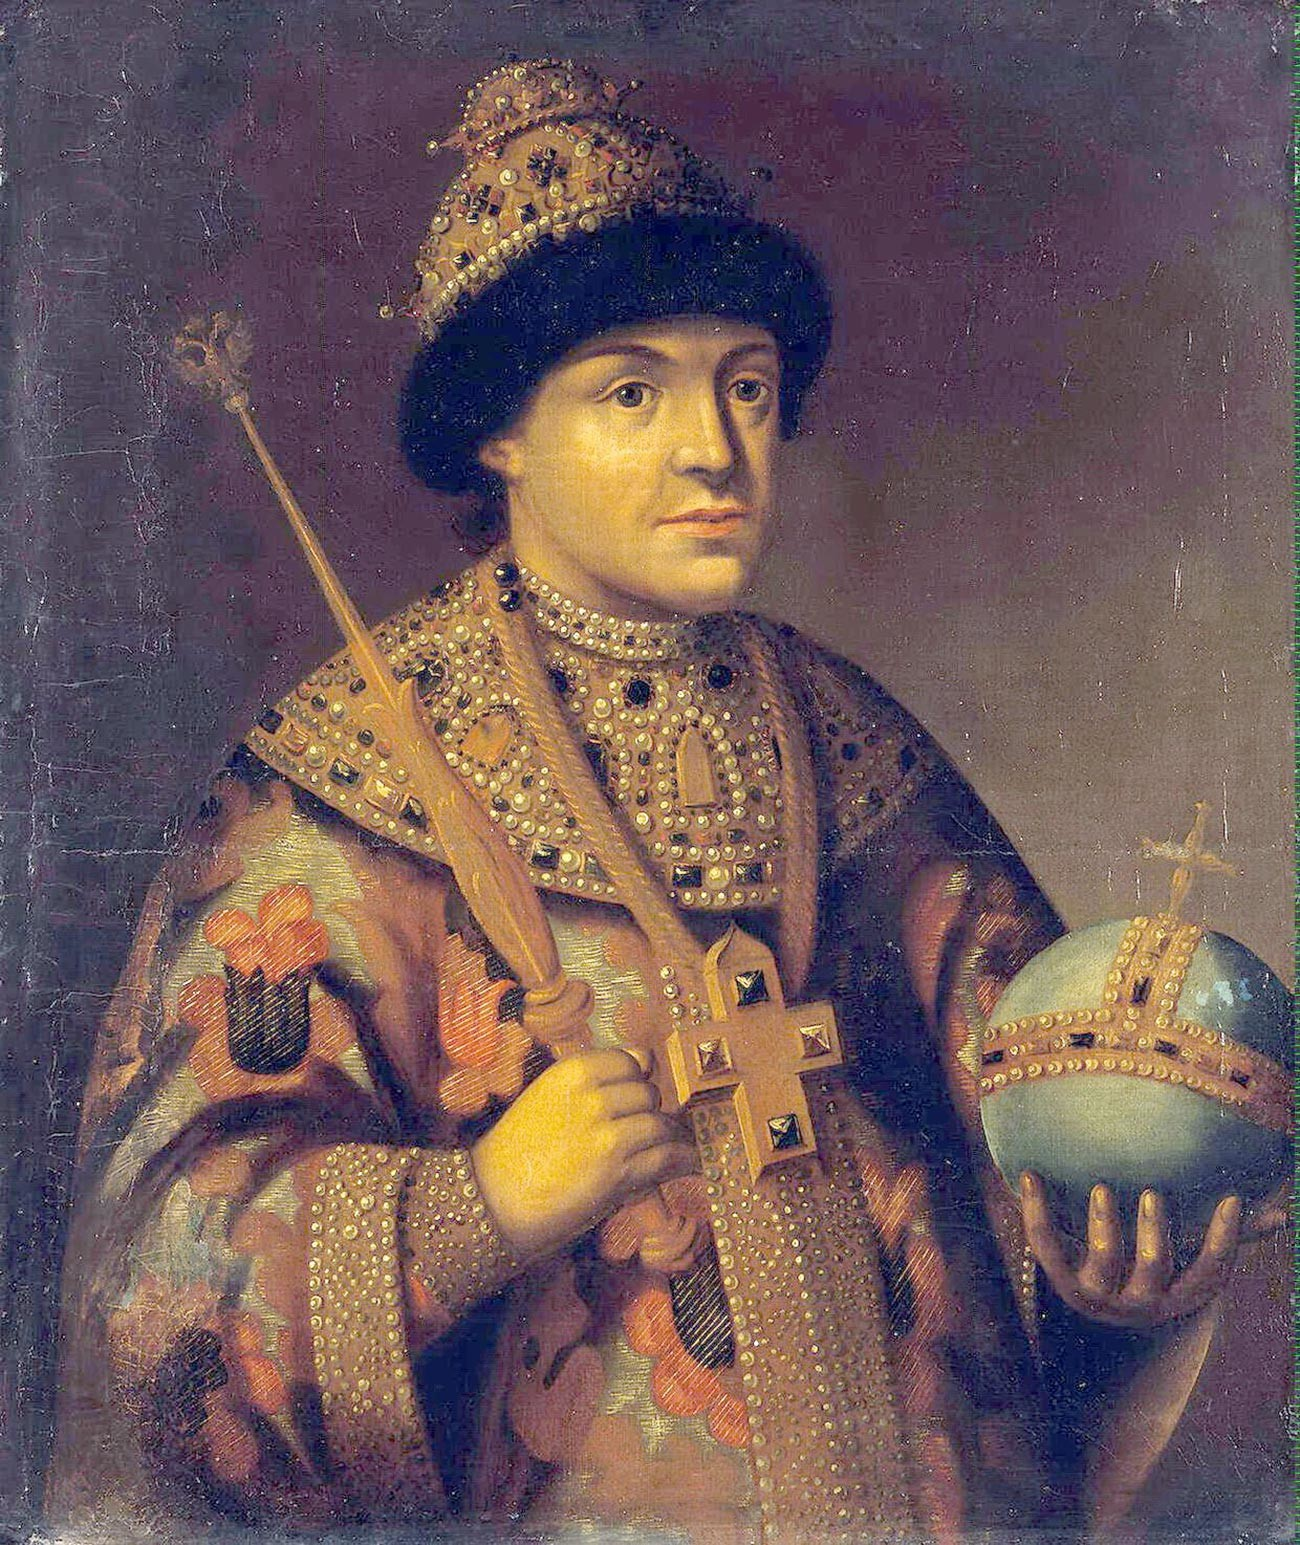 Tsar Fedor Alexeyevich (1661-1682). His younger brother Ivan (1666-1696) was probably mentally disabled.